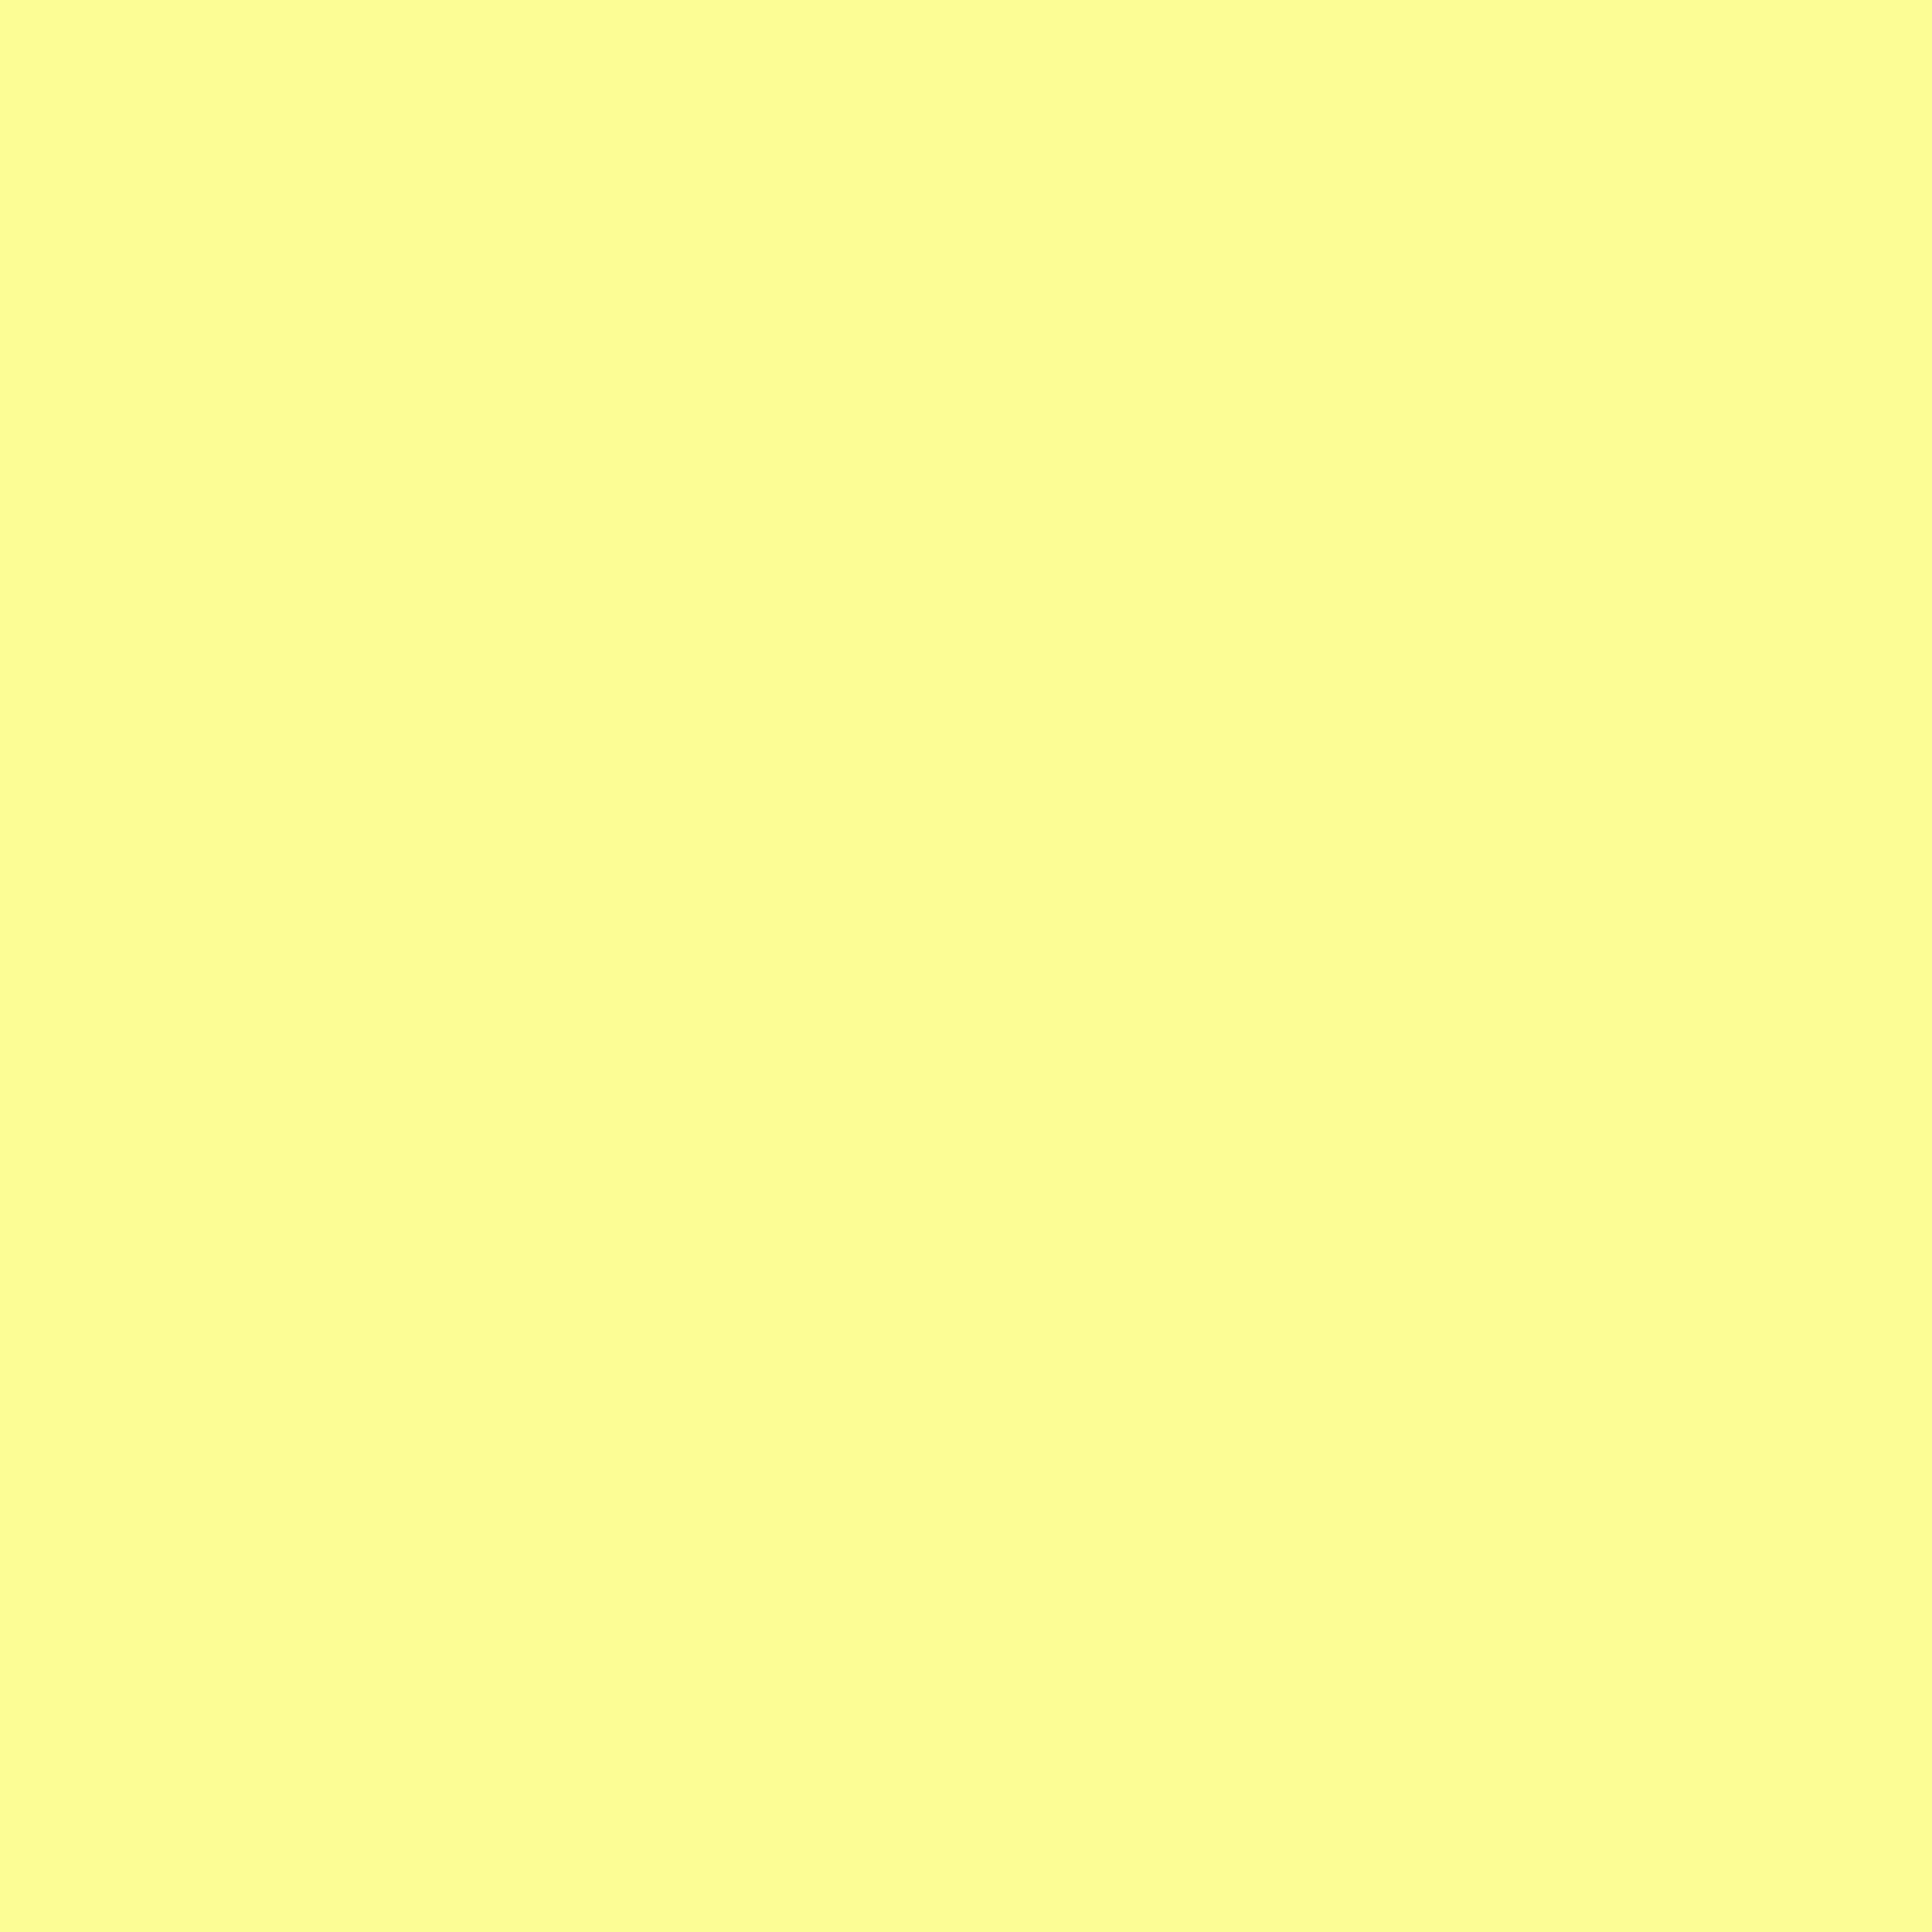 2732x2732 Pastel Yellow Solid Color Background